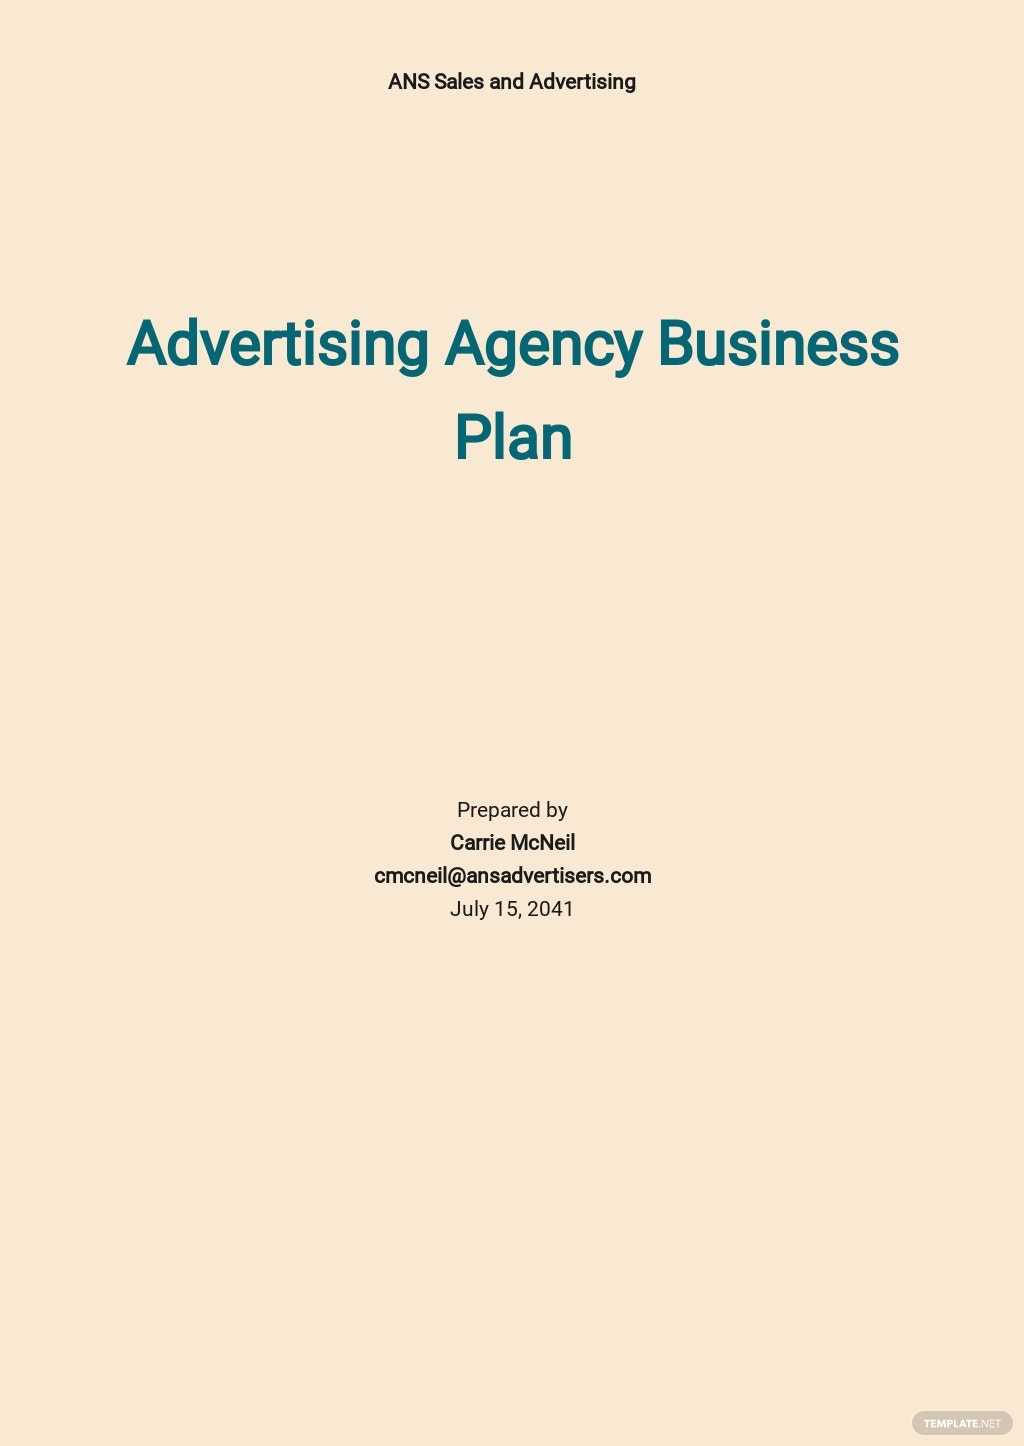 Advertising Agency Business Plan Template